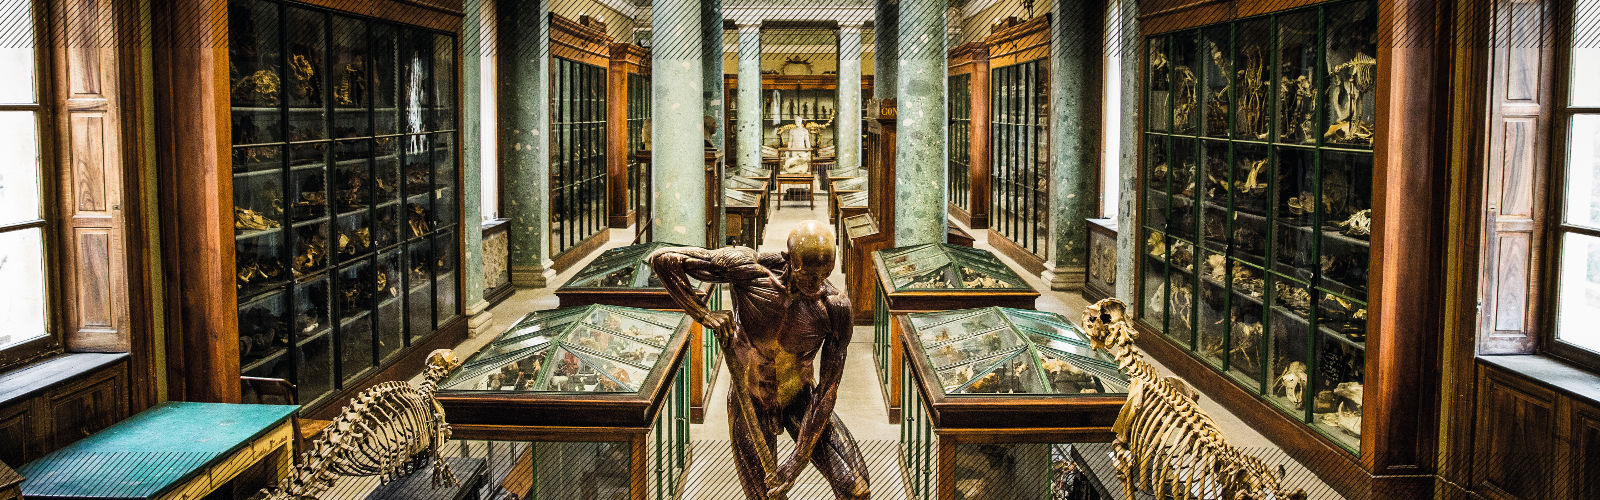 musee anatomie (carrousel)